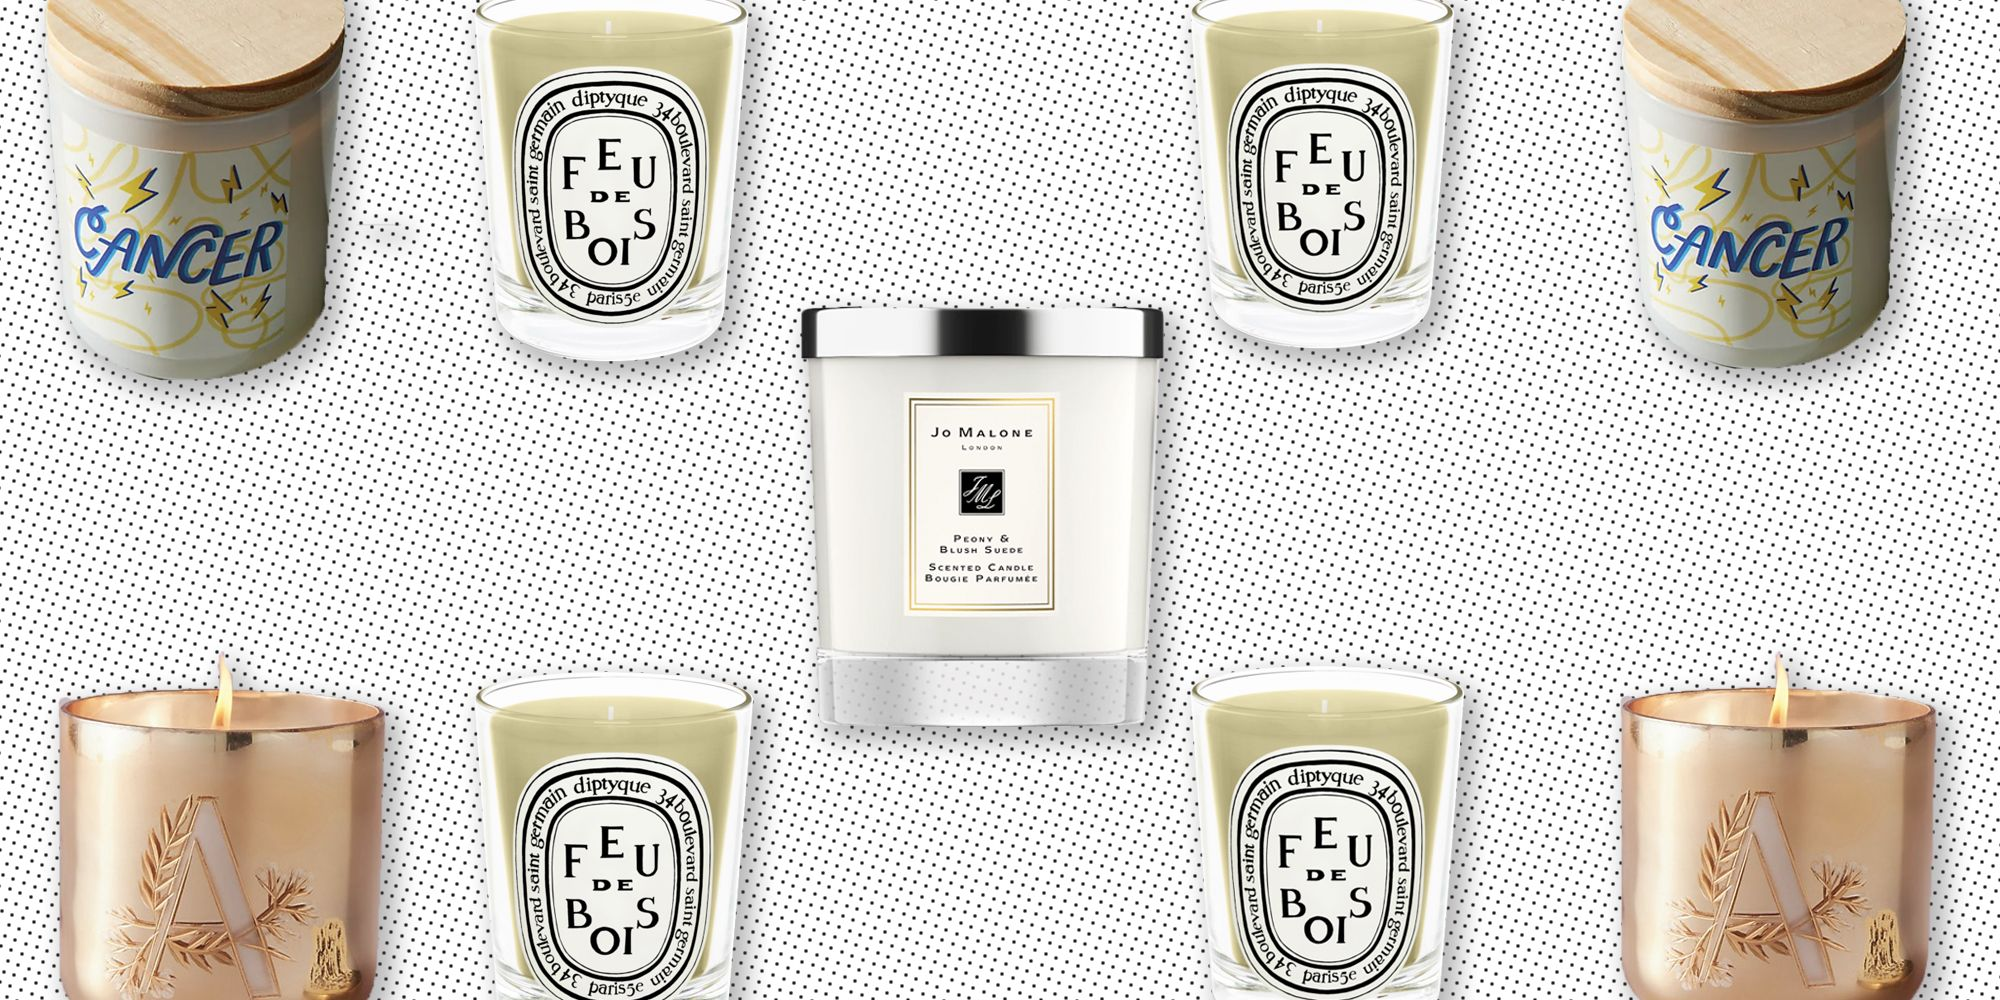 15 Of The Best Personalised Candles To Gift Your Loved Ones (Or Yourself)